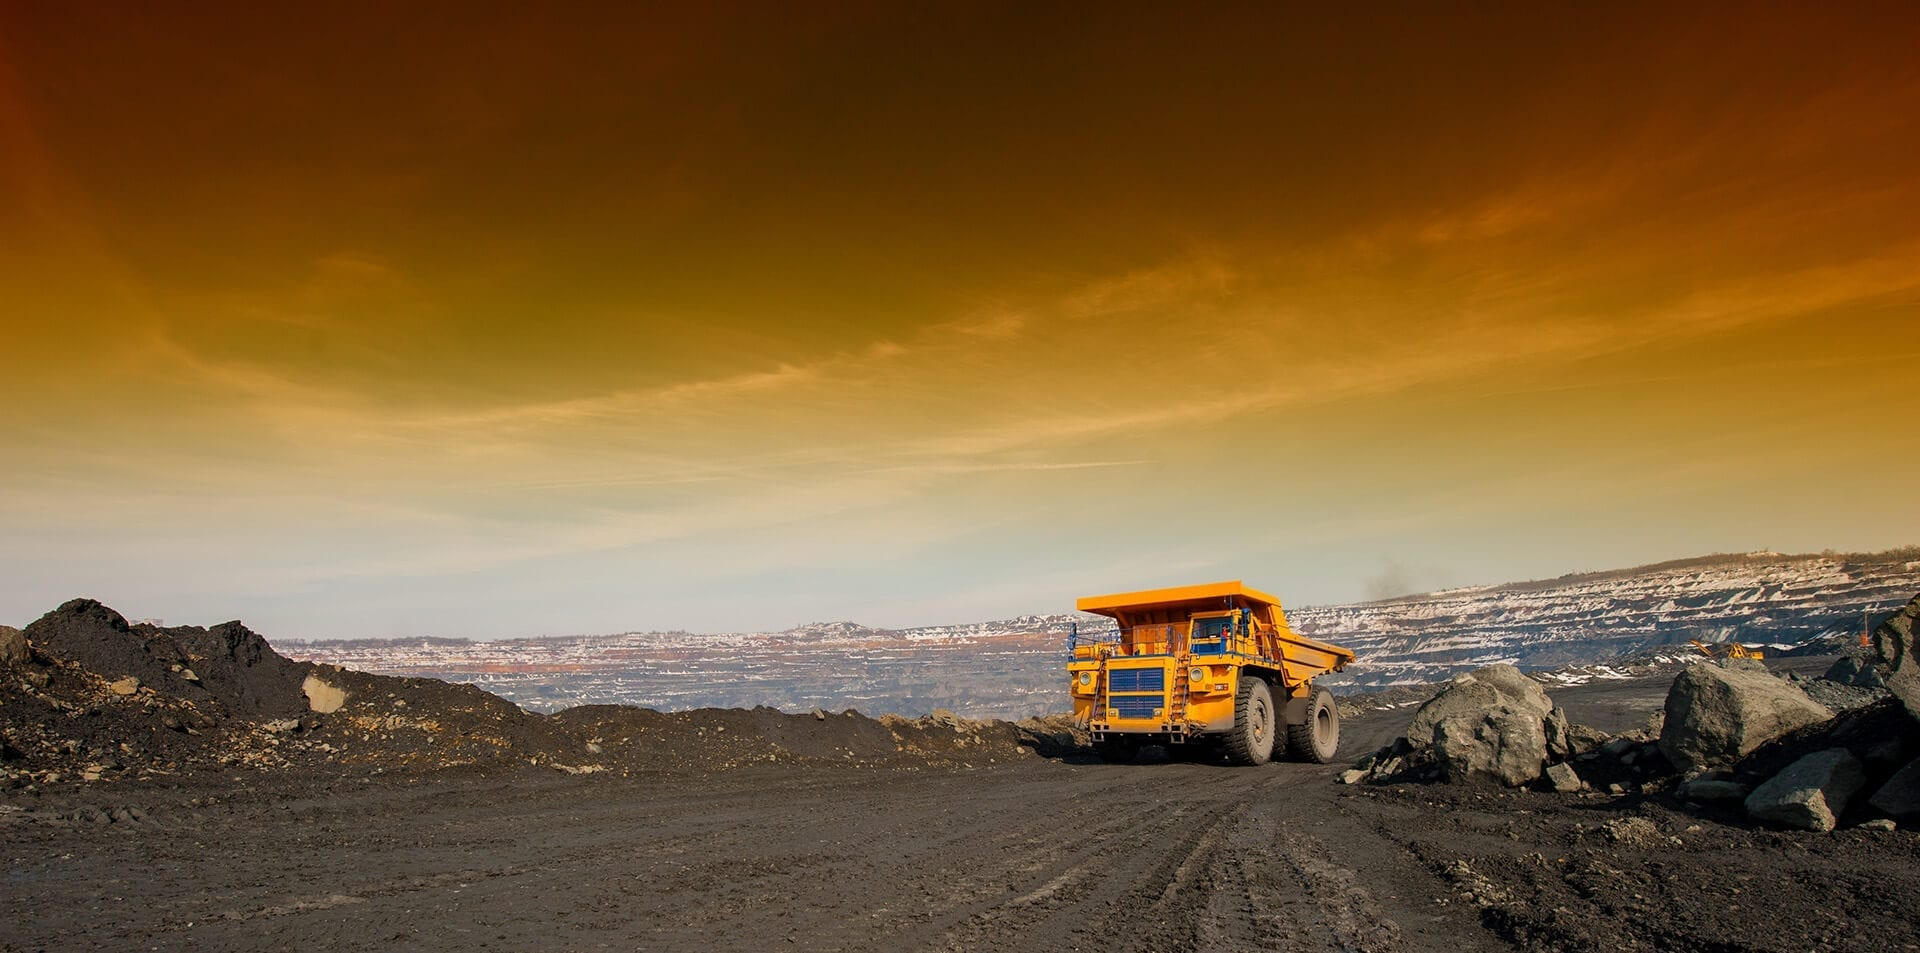 Effective leadership in mining more important now than ever